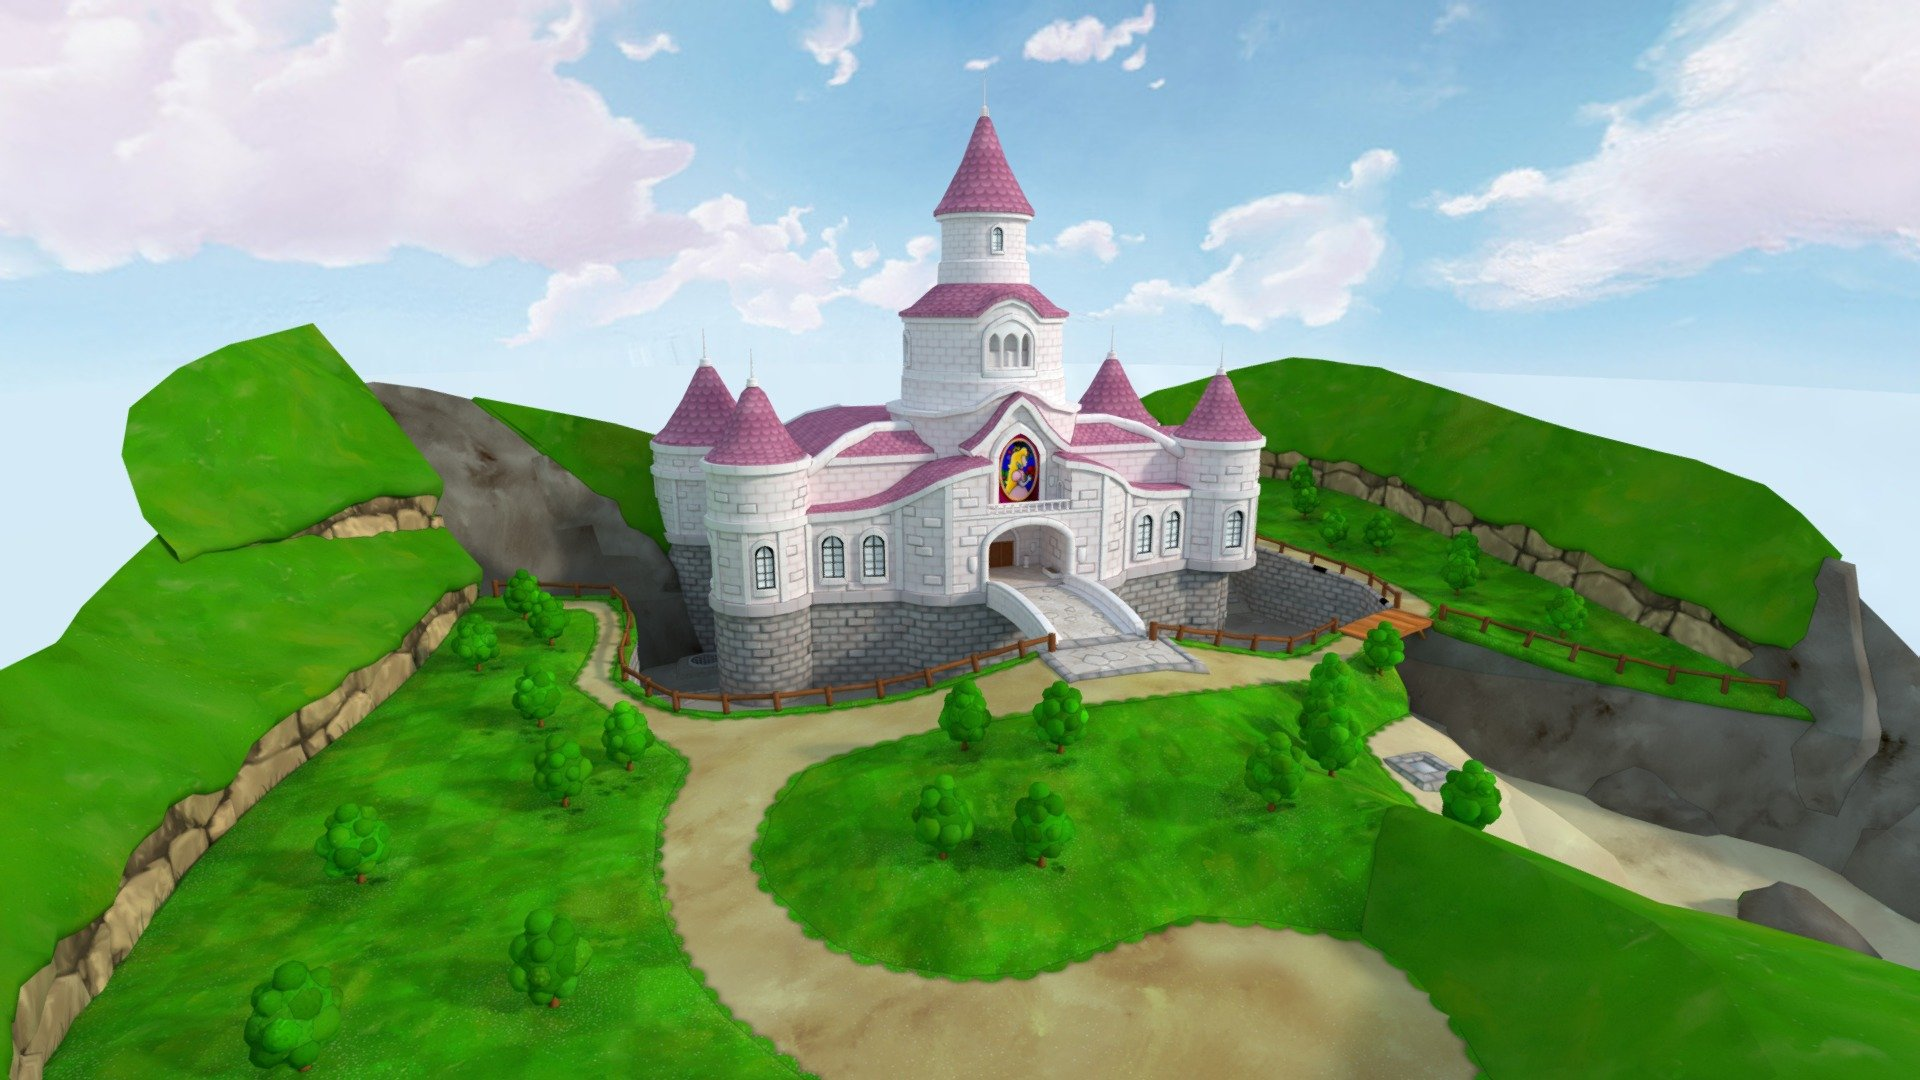 Peach Castle Download Free 3d Model By Mstuff Mstuff